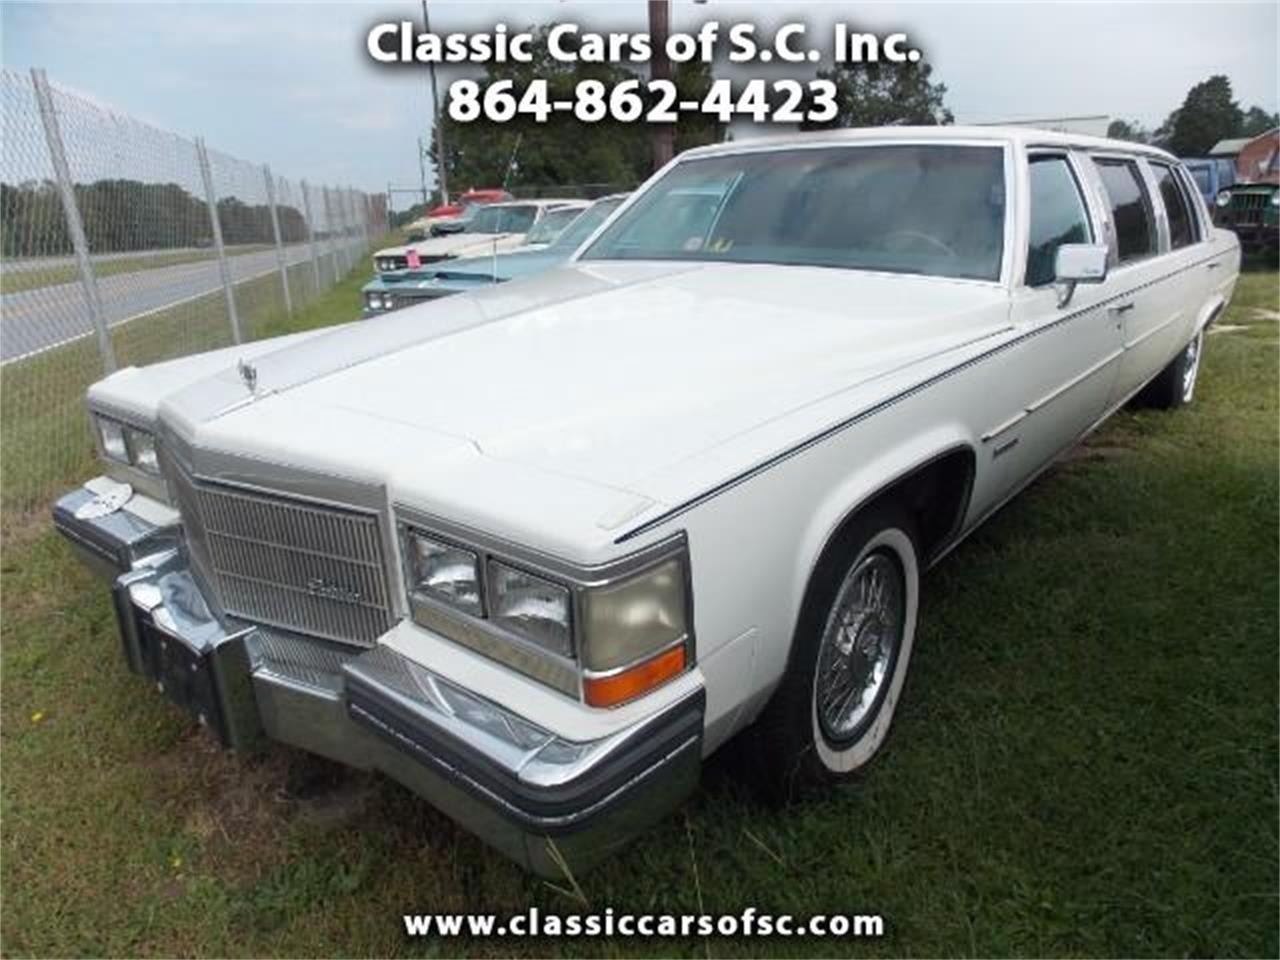 1983 Cadillac Limousine for sale in Gray Court, SC